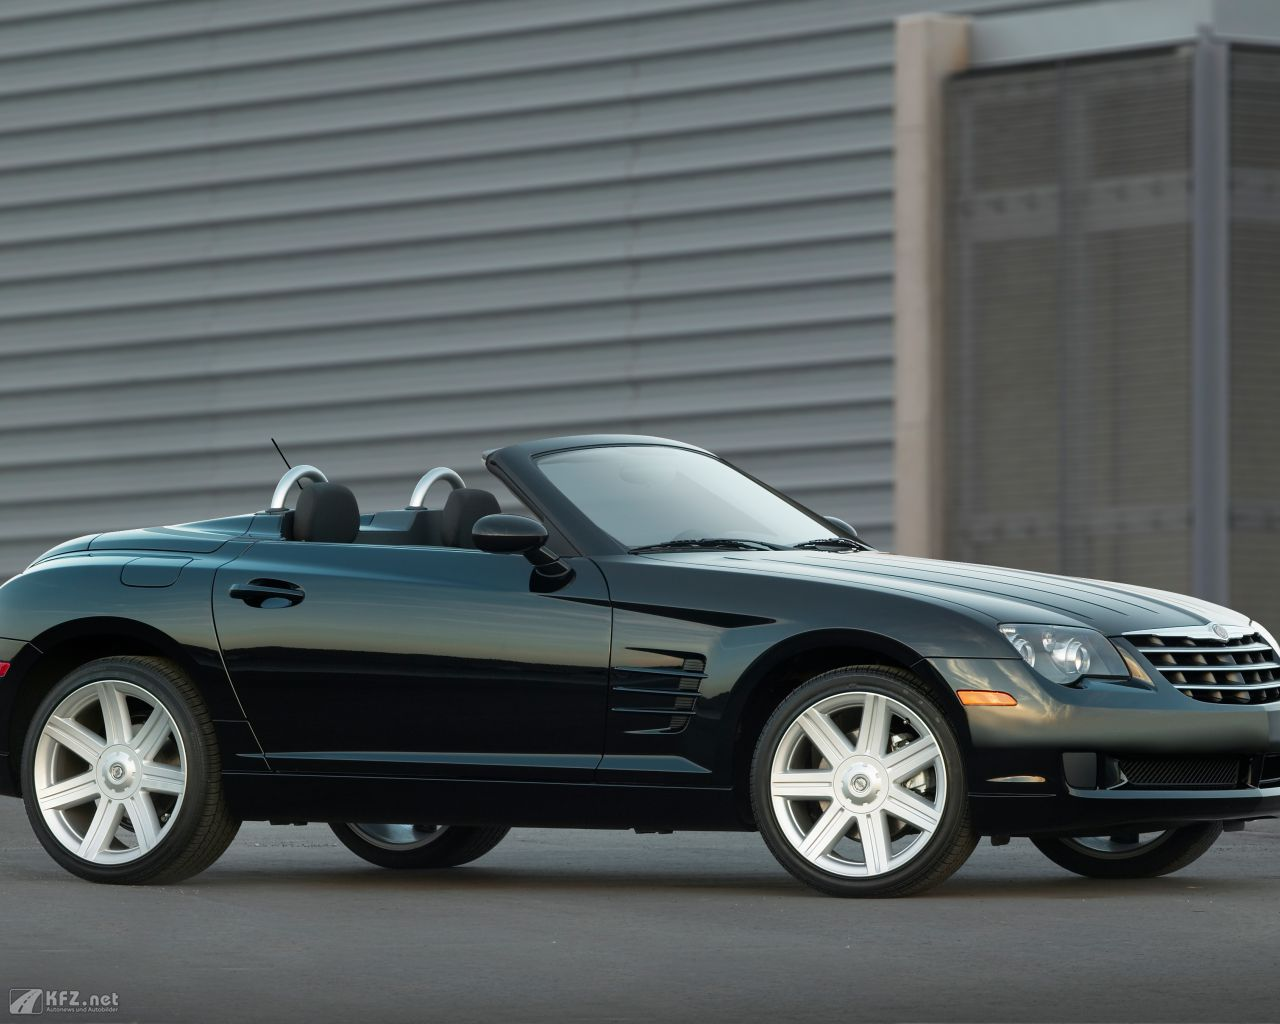 chrysler-crossfire-1280x1024-19